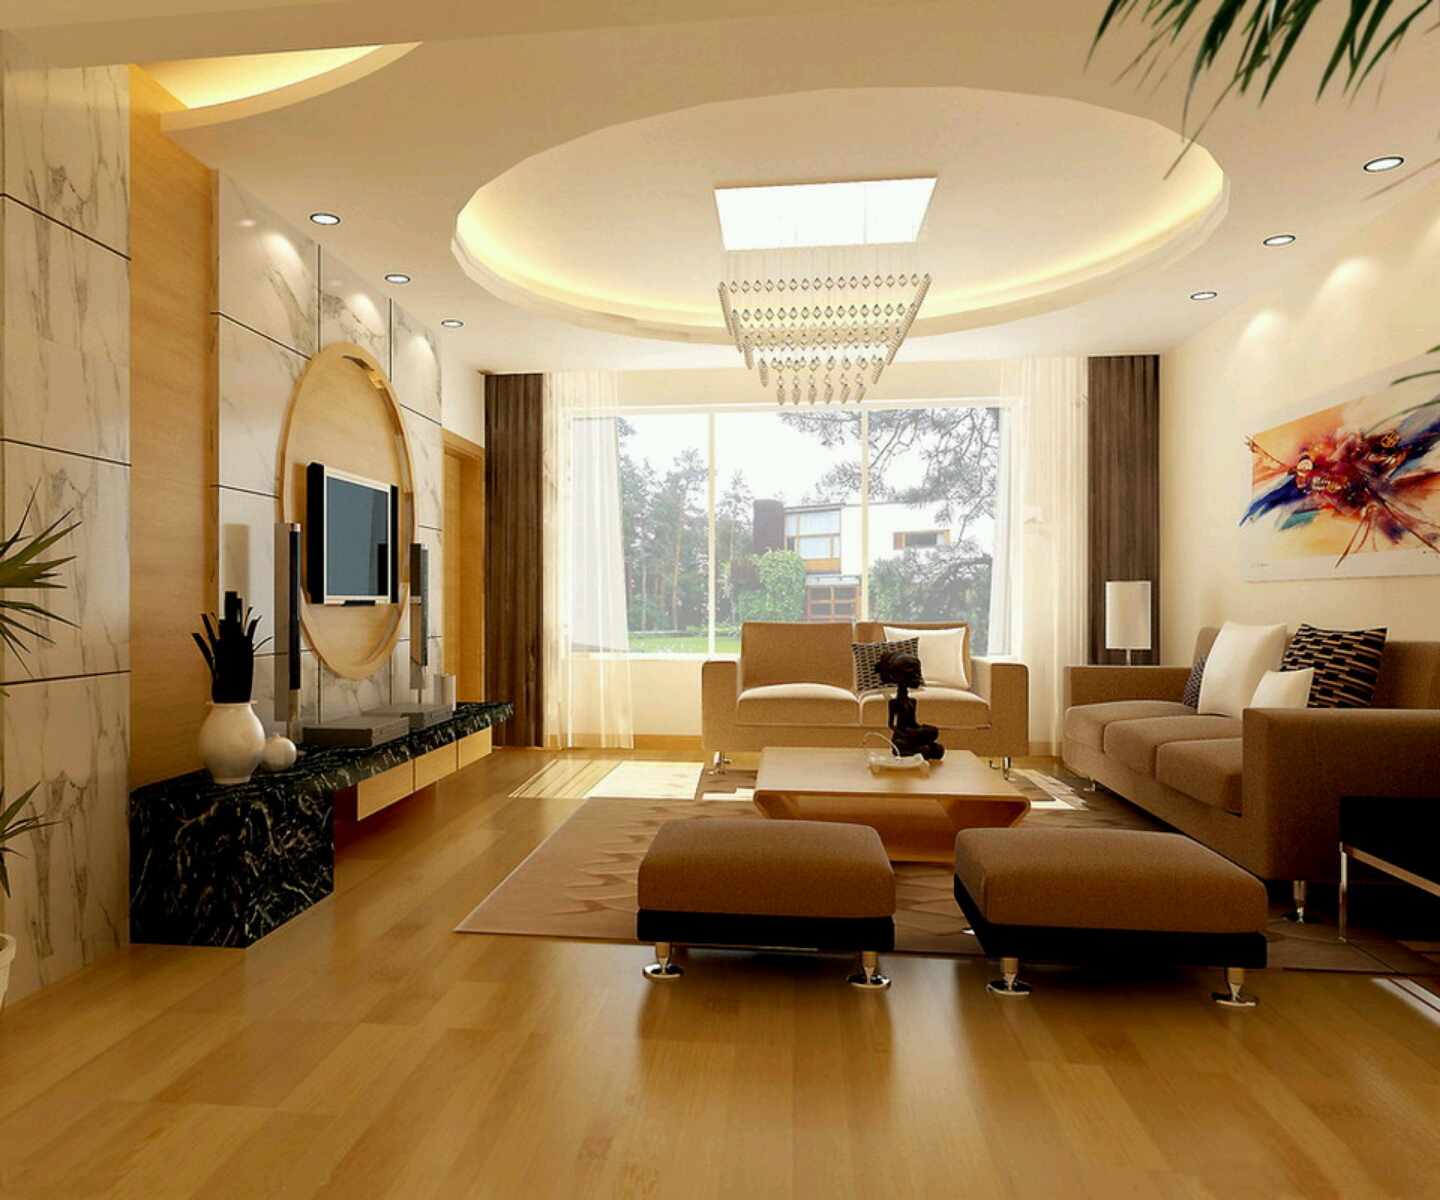 New home designs latest modern interior decoration for Internal home decoration